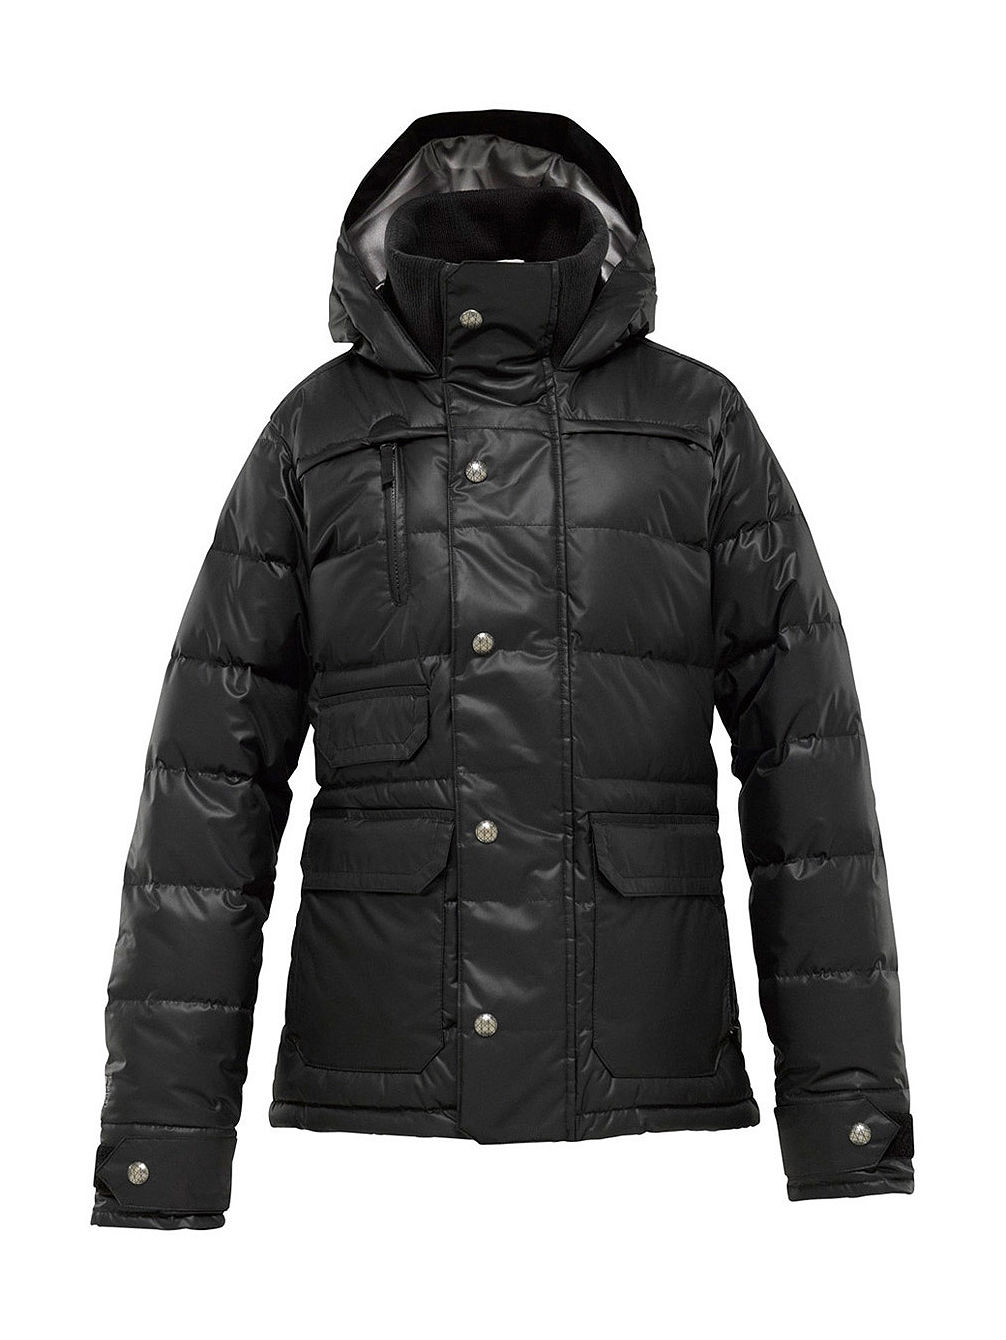 Dandridge Down Jacket Women